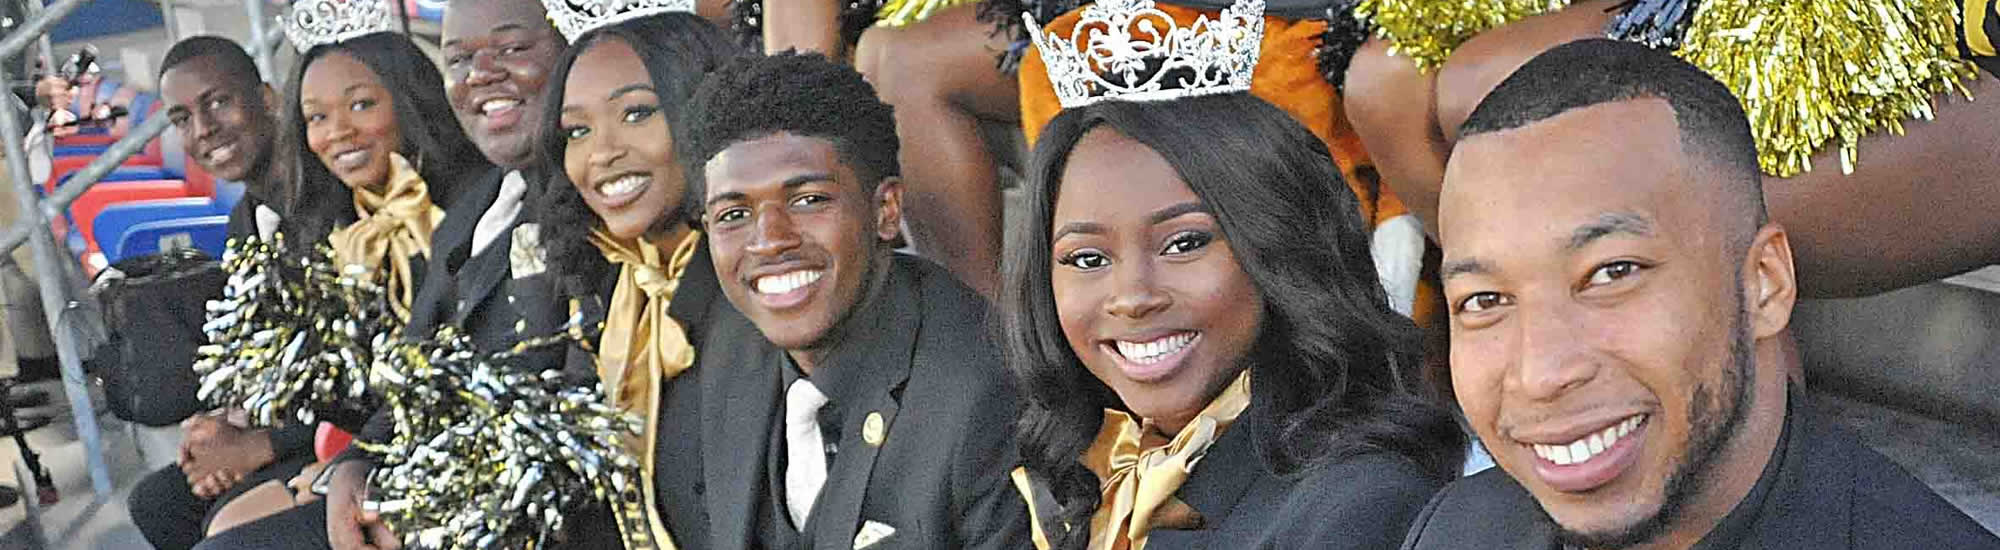 See what student life at Grambling State University has to offer.